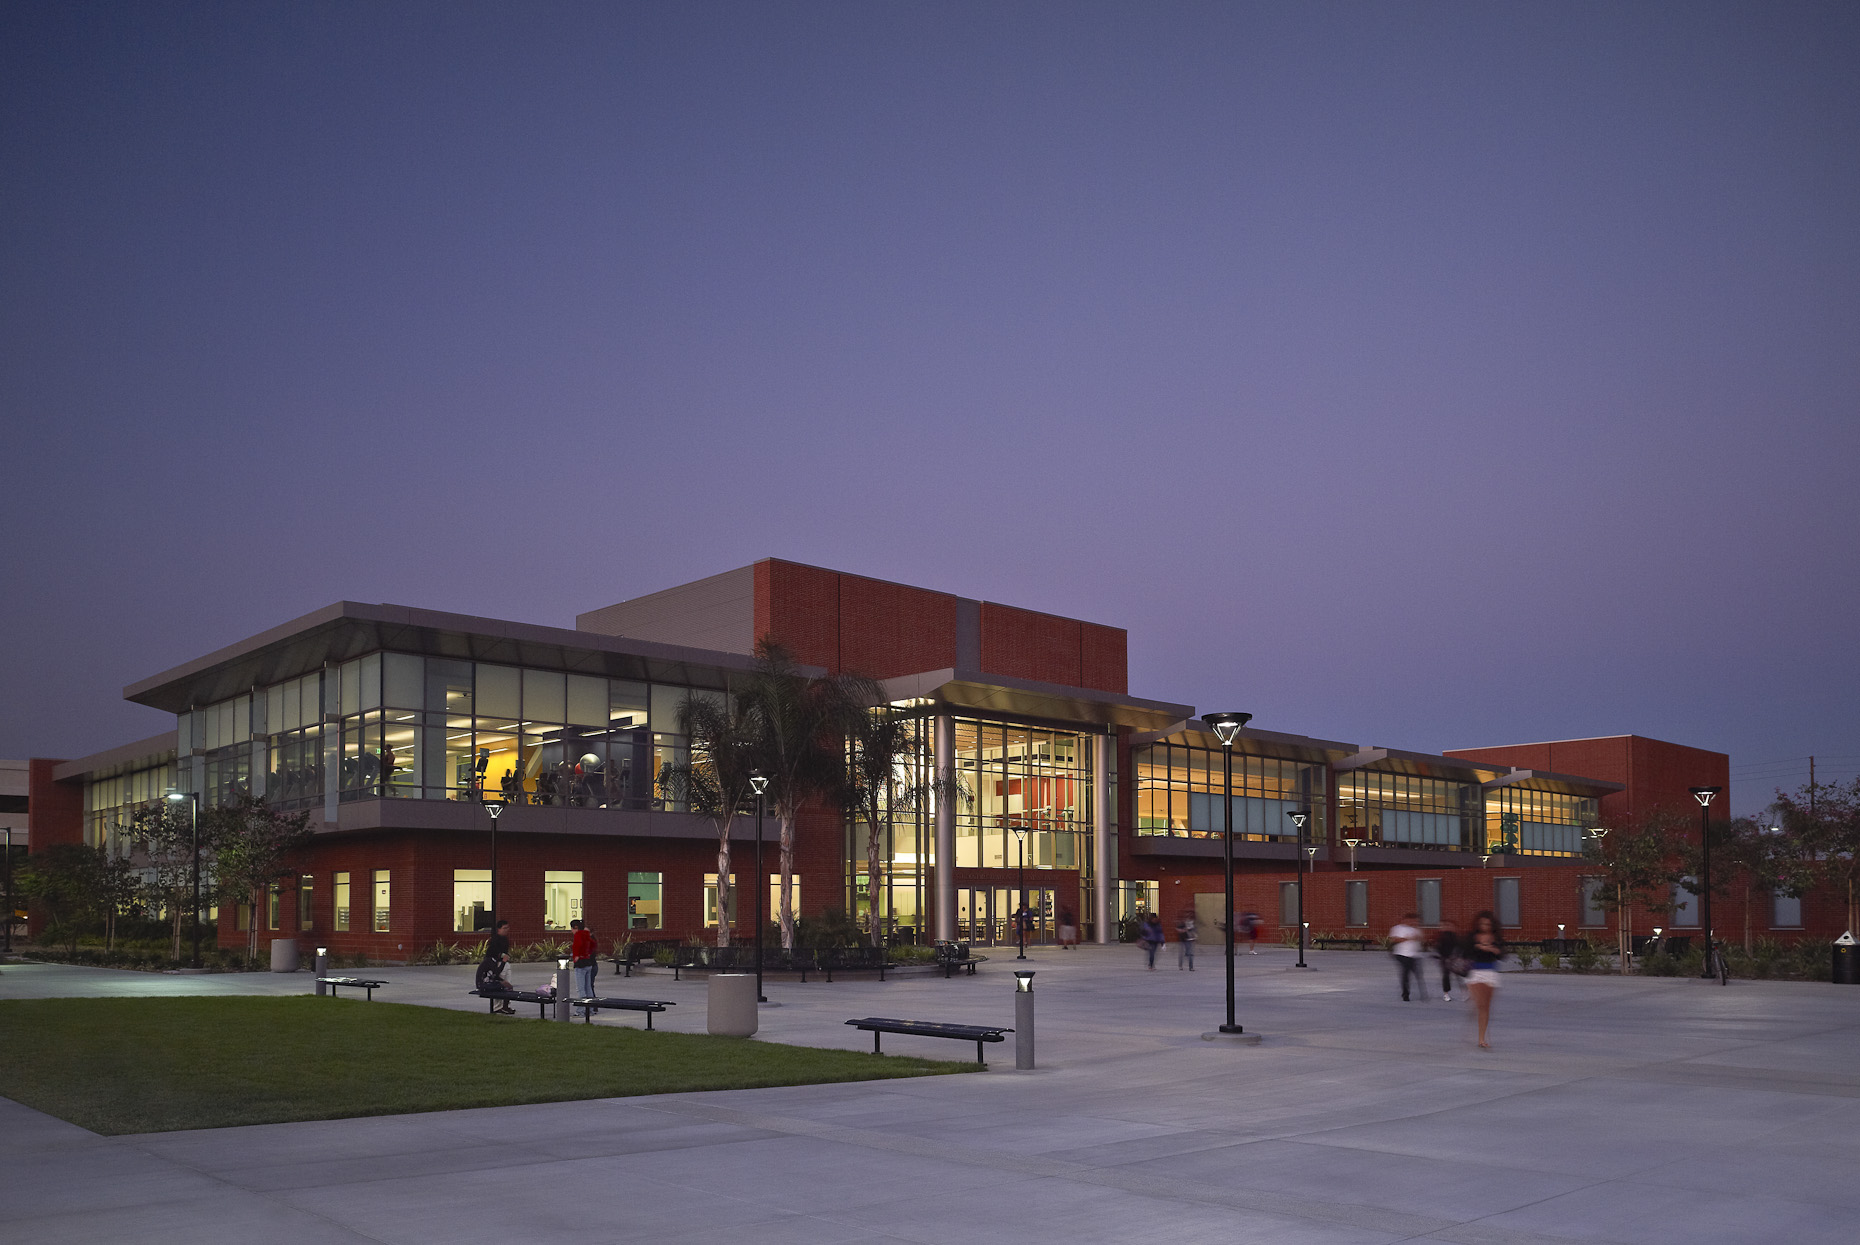 California State University Long Beach Recreation & Wellness Center by Cannon Design